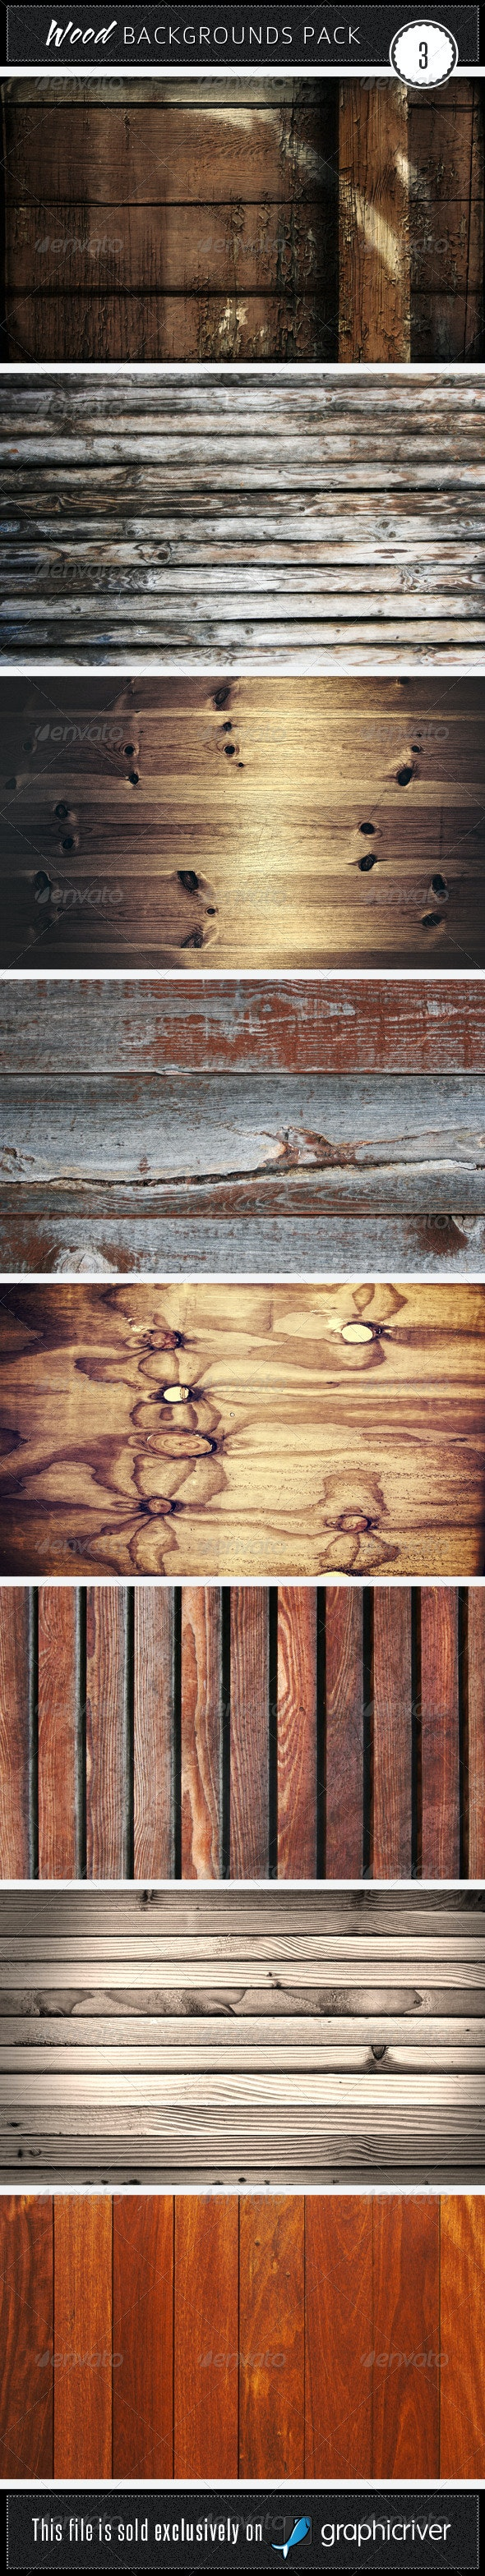 Wood Backgrounds Pack 3 - Wood Textures